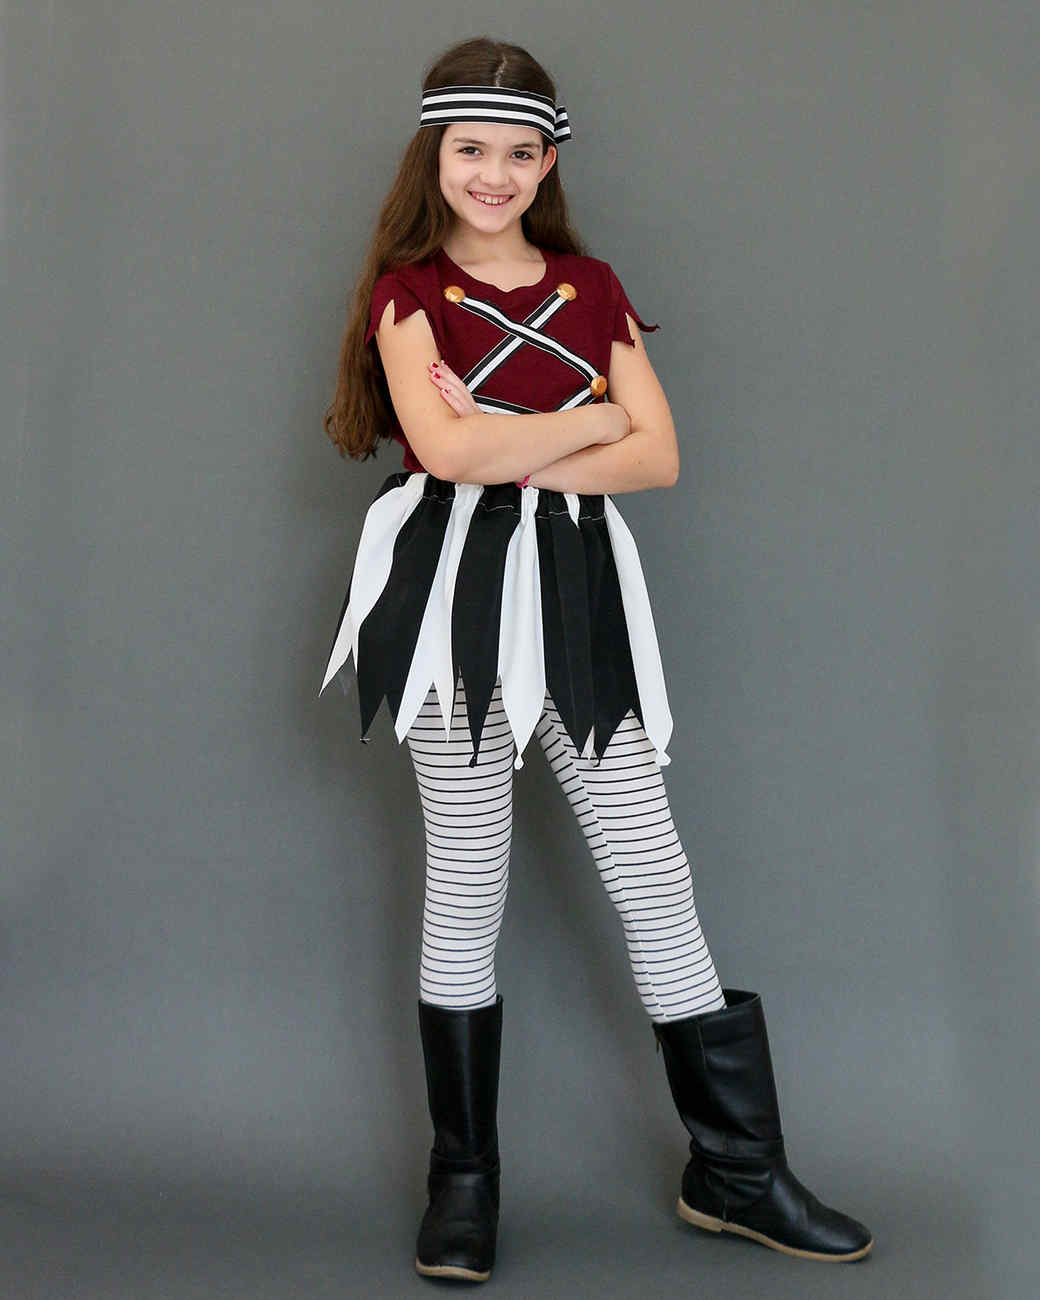 girl in pirate costume posing against gray background